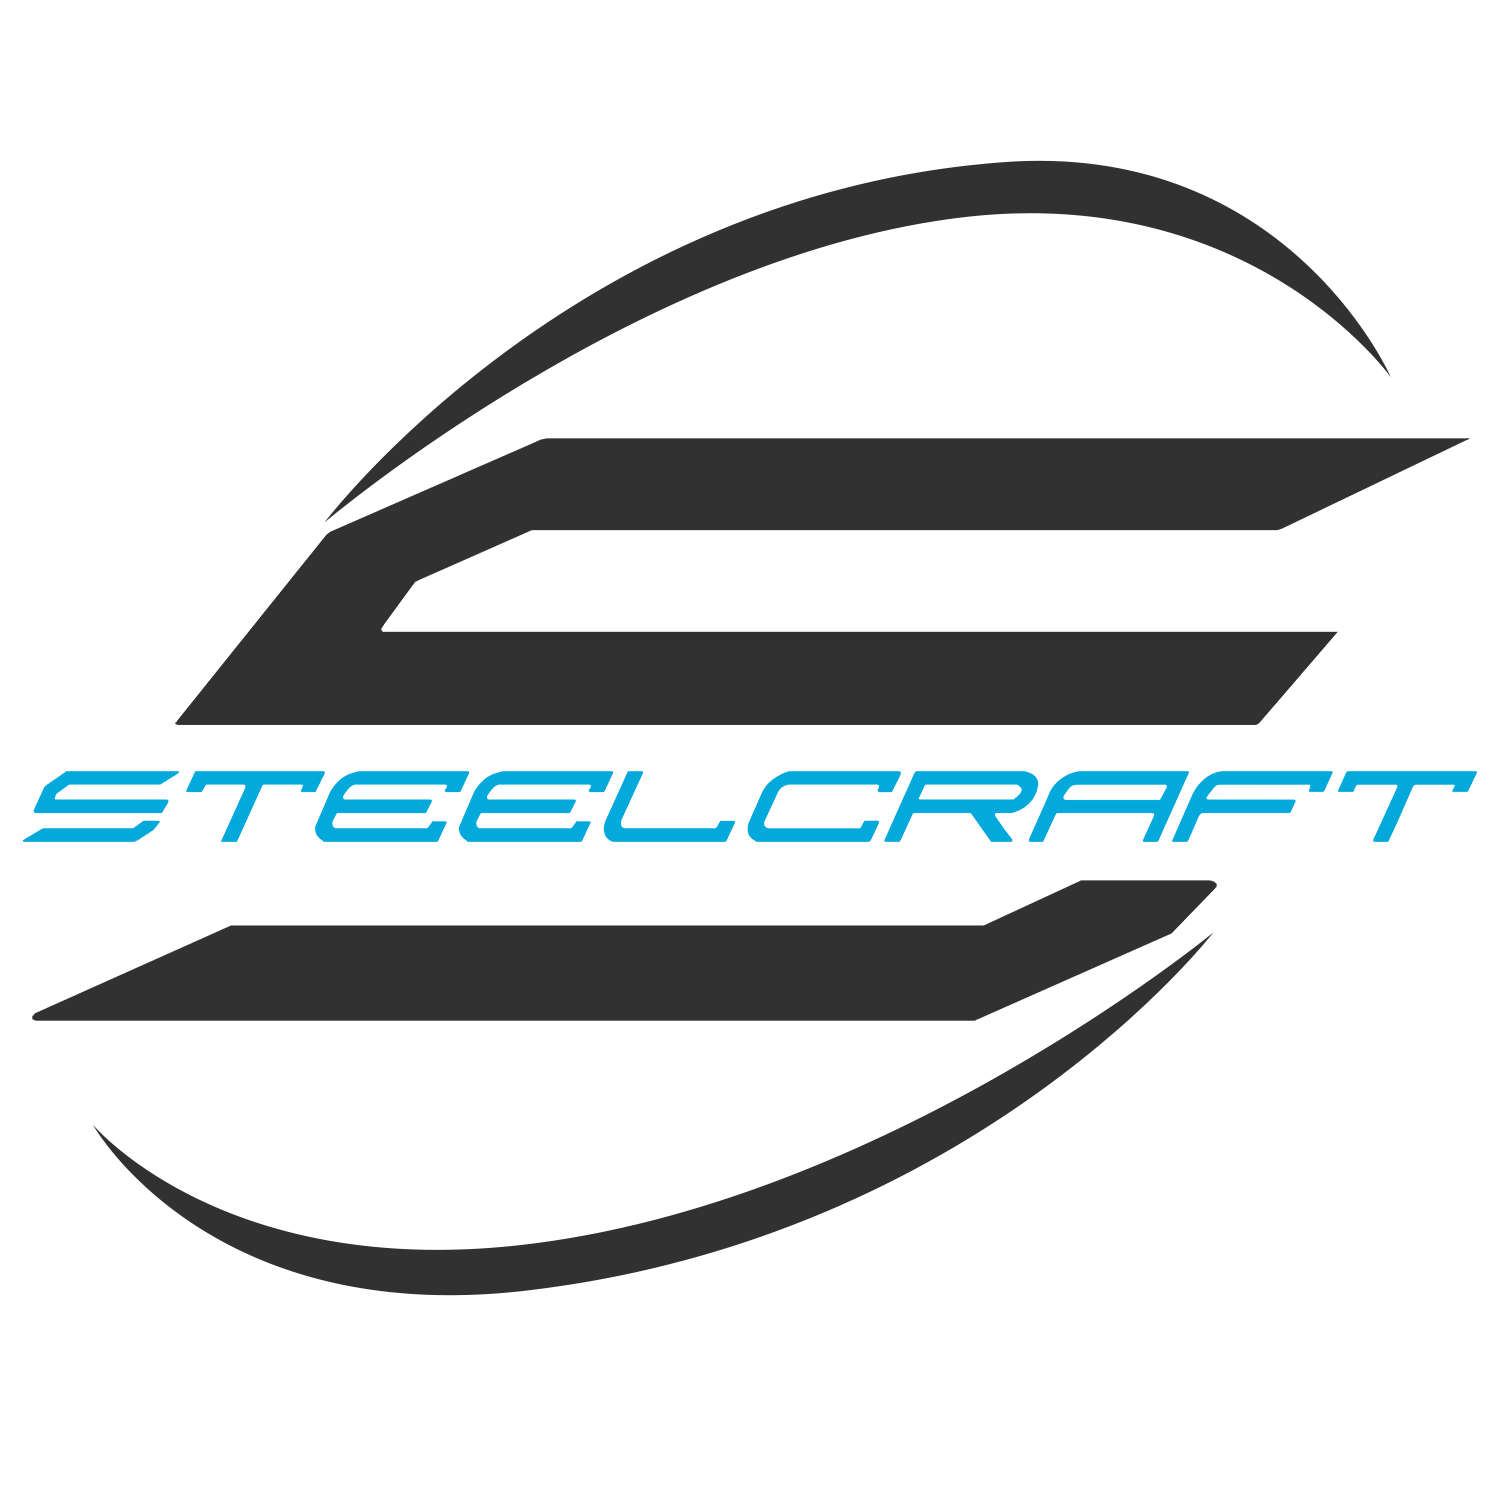 Steelcraft automotive logo.png